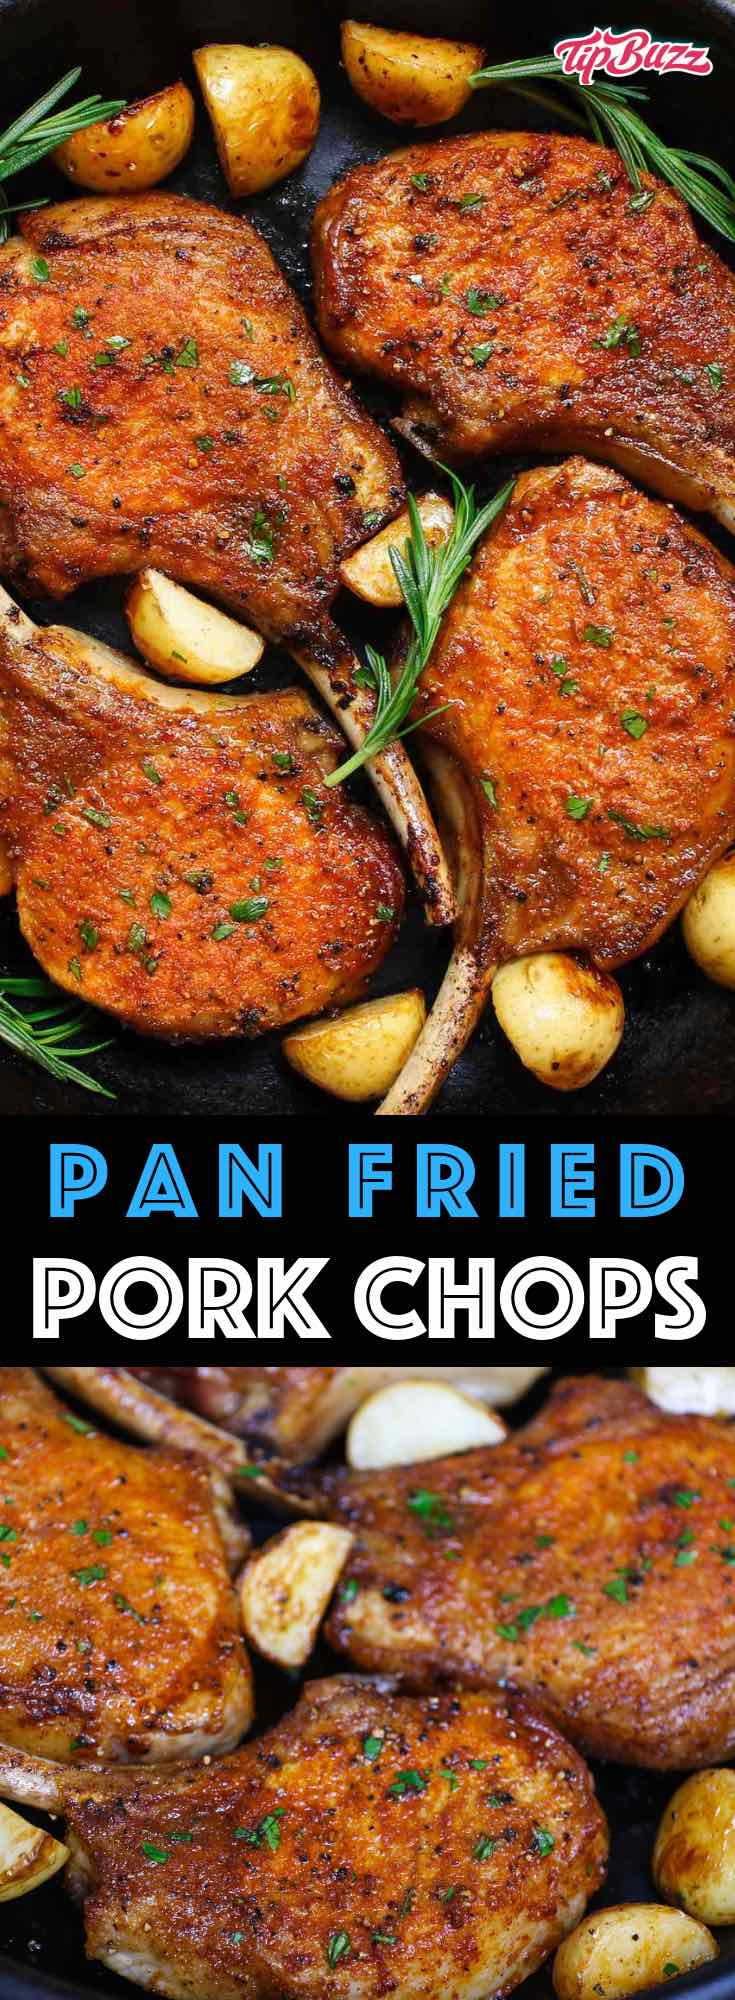 Pan Fried Pork Chops are a scrumptious, 5-ingredient pork chop recipe that'll be on your dinner table in 15 minutes. They feature a mouthwatering golden crust with no marinating or breading required.